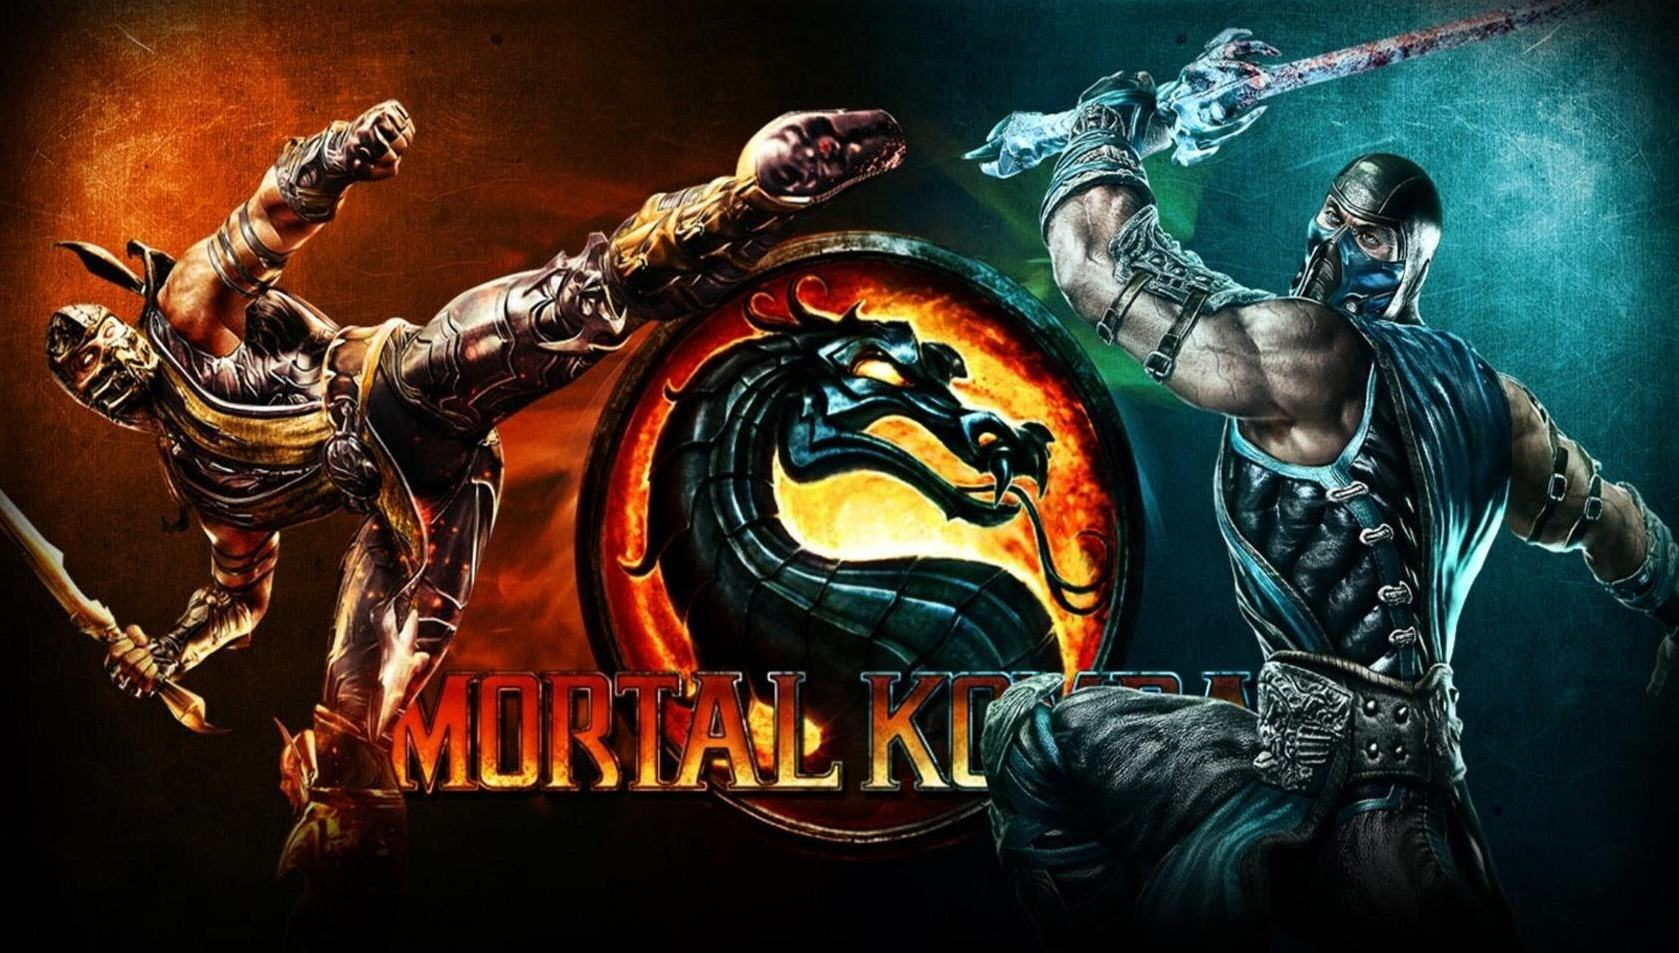 Mortal Kombat Is Returning To The Big Screen   Directed By Furious 7s James Wan UNILAD 15